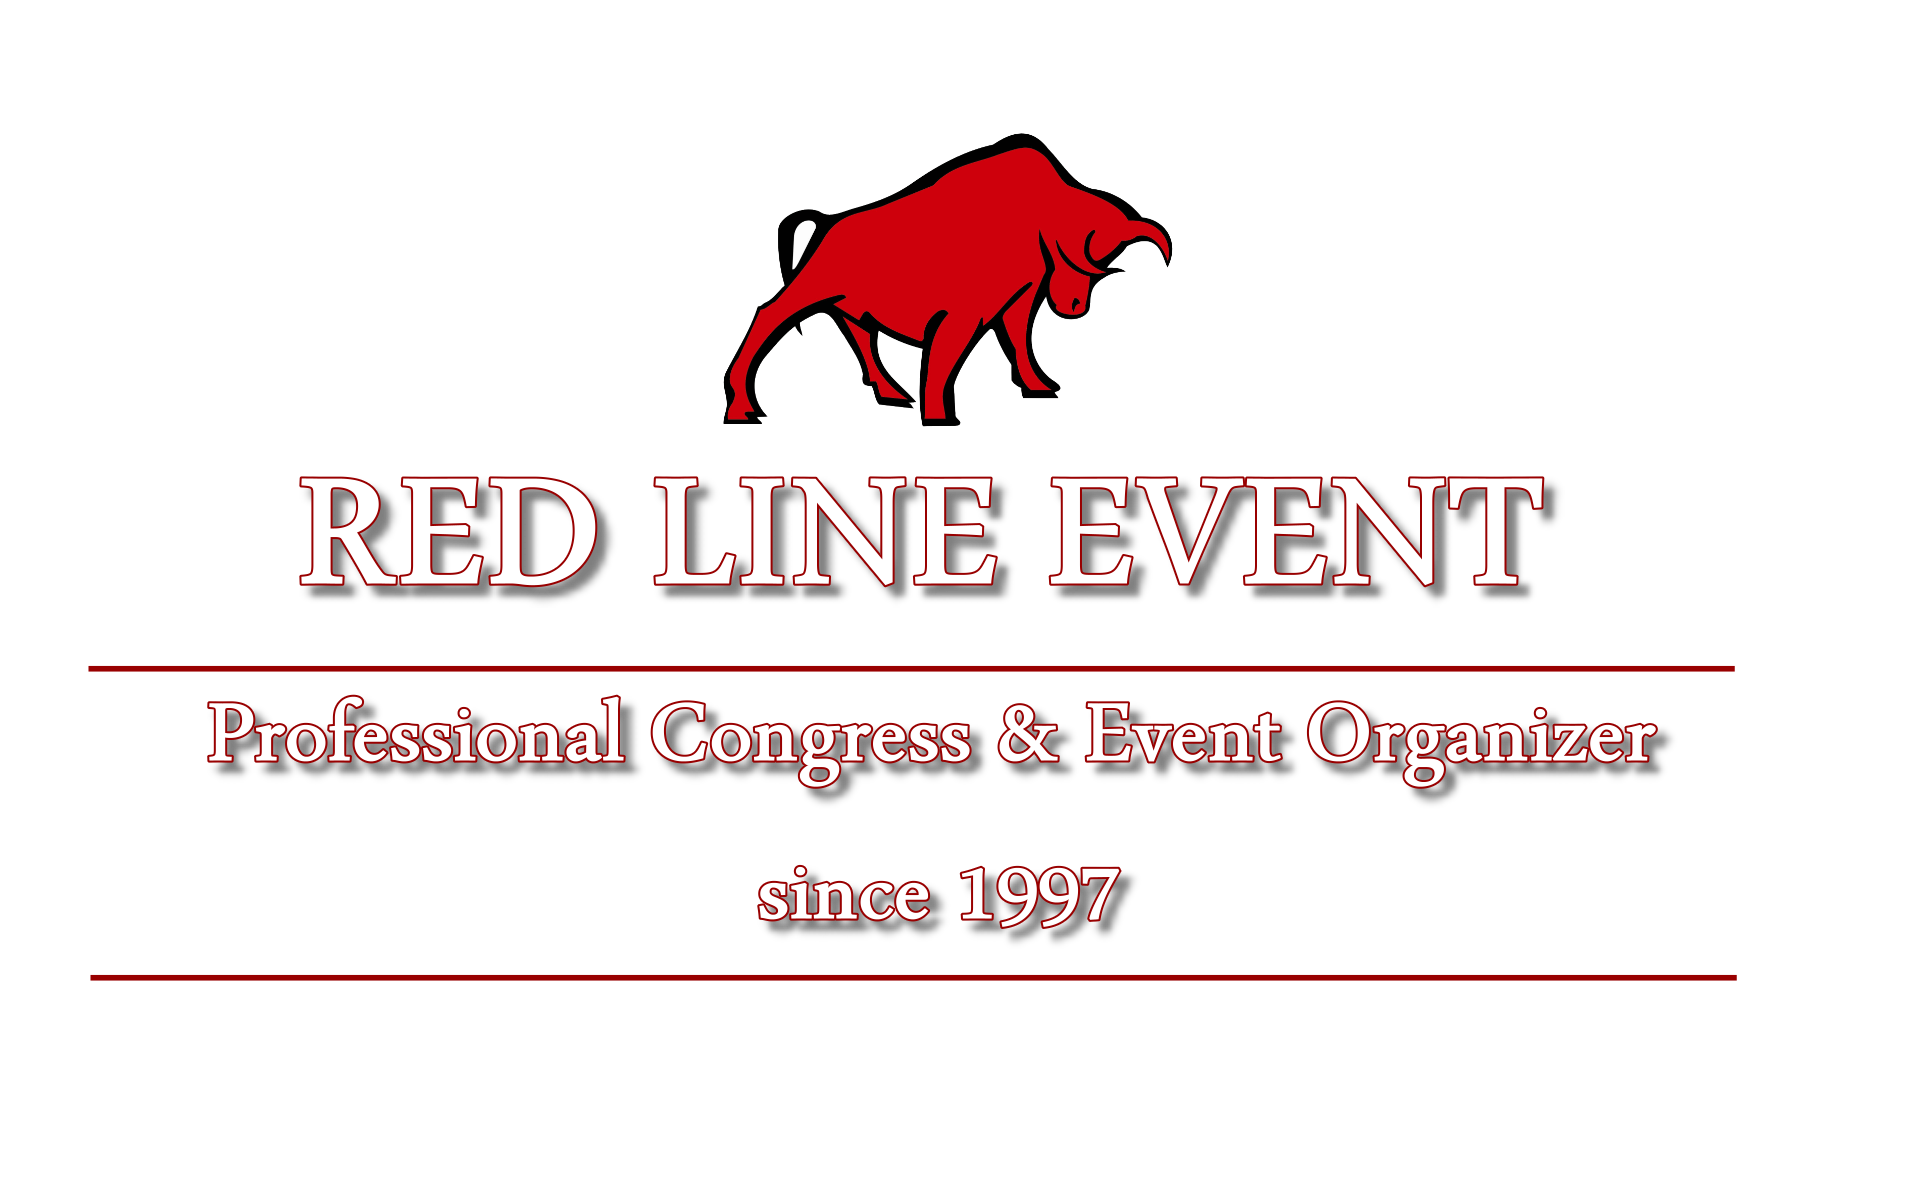 Red Line Event - Balearic Islands, Barcelona and Canary Islands.